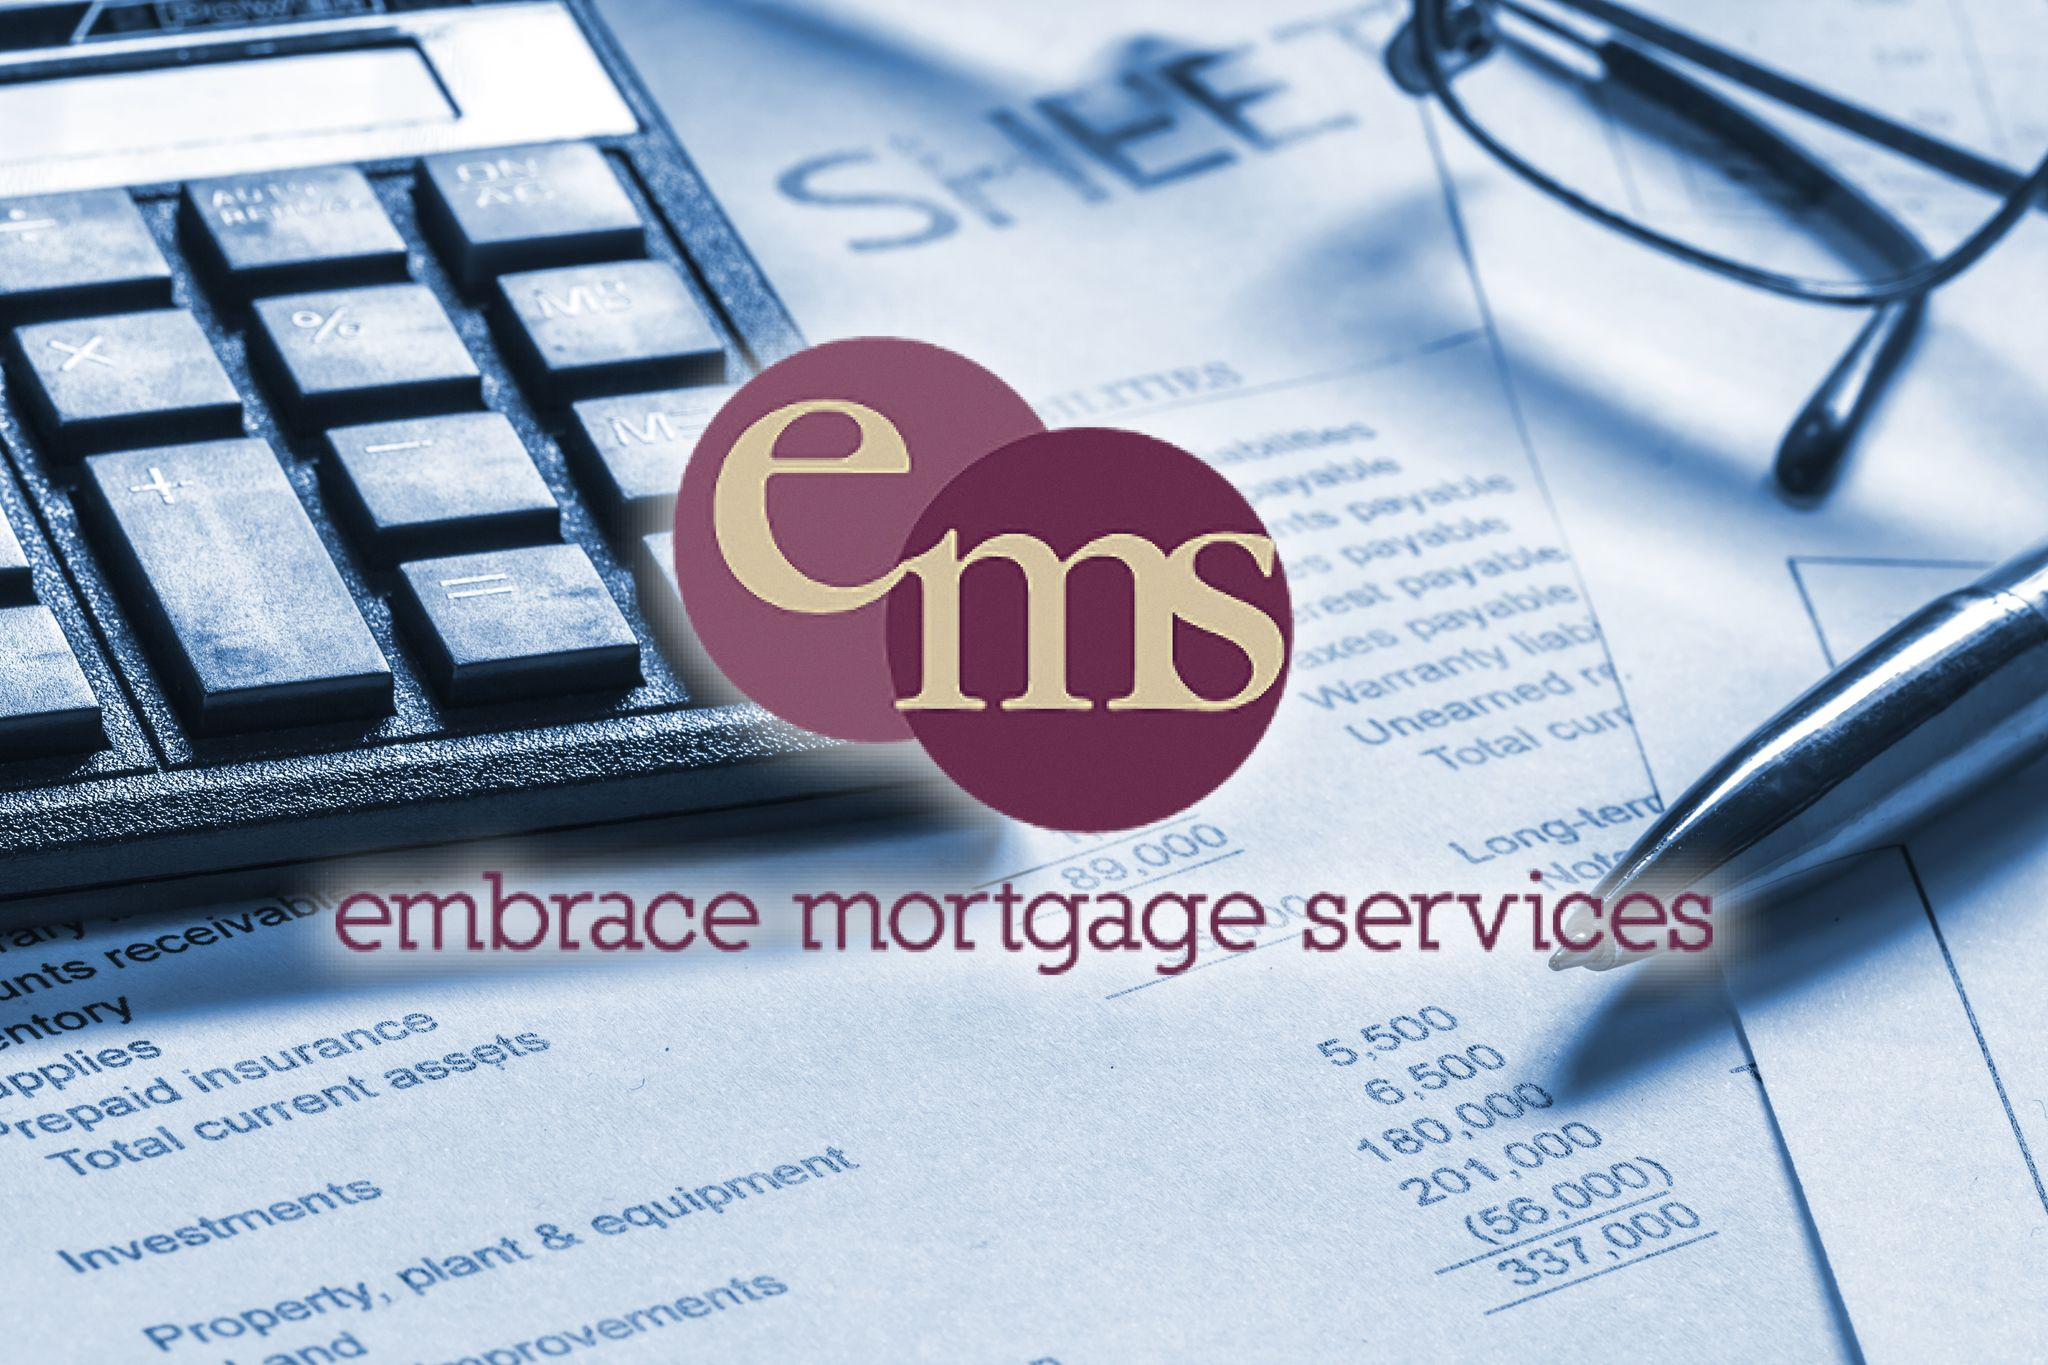 Embrace Mortgage Services